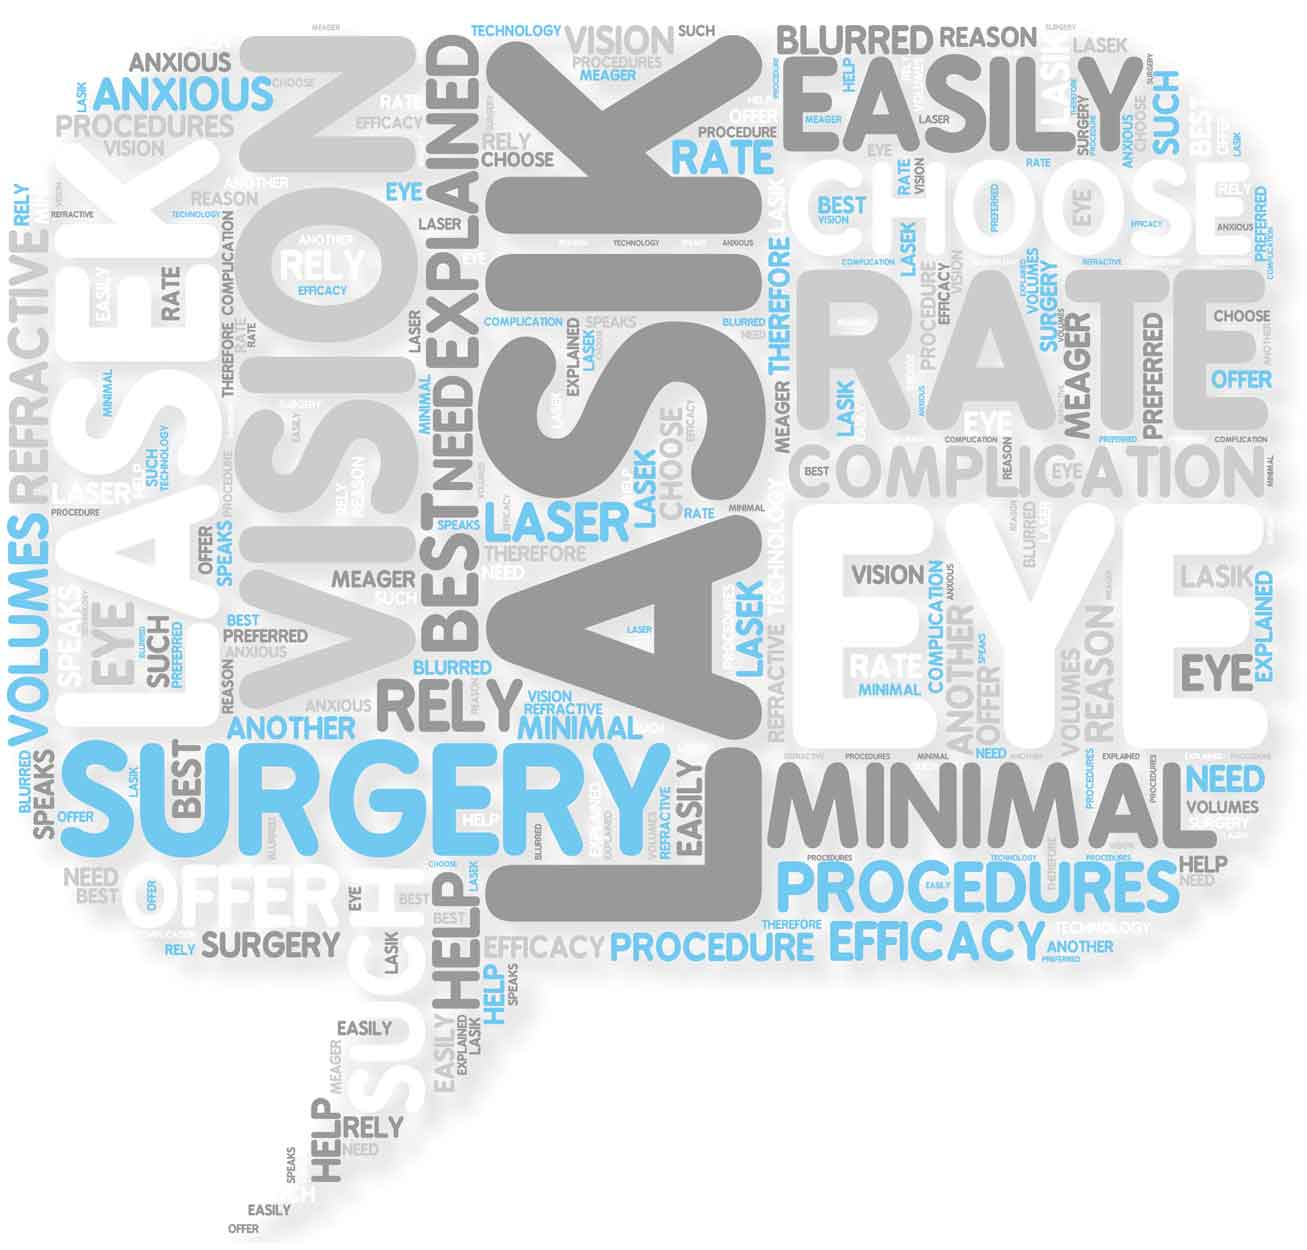 Thorough LASIK Evaluation at Vista Eye